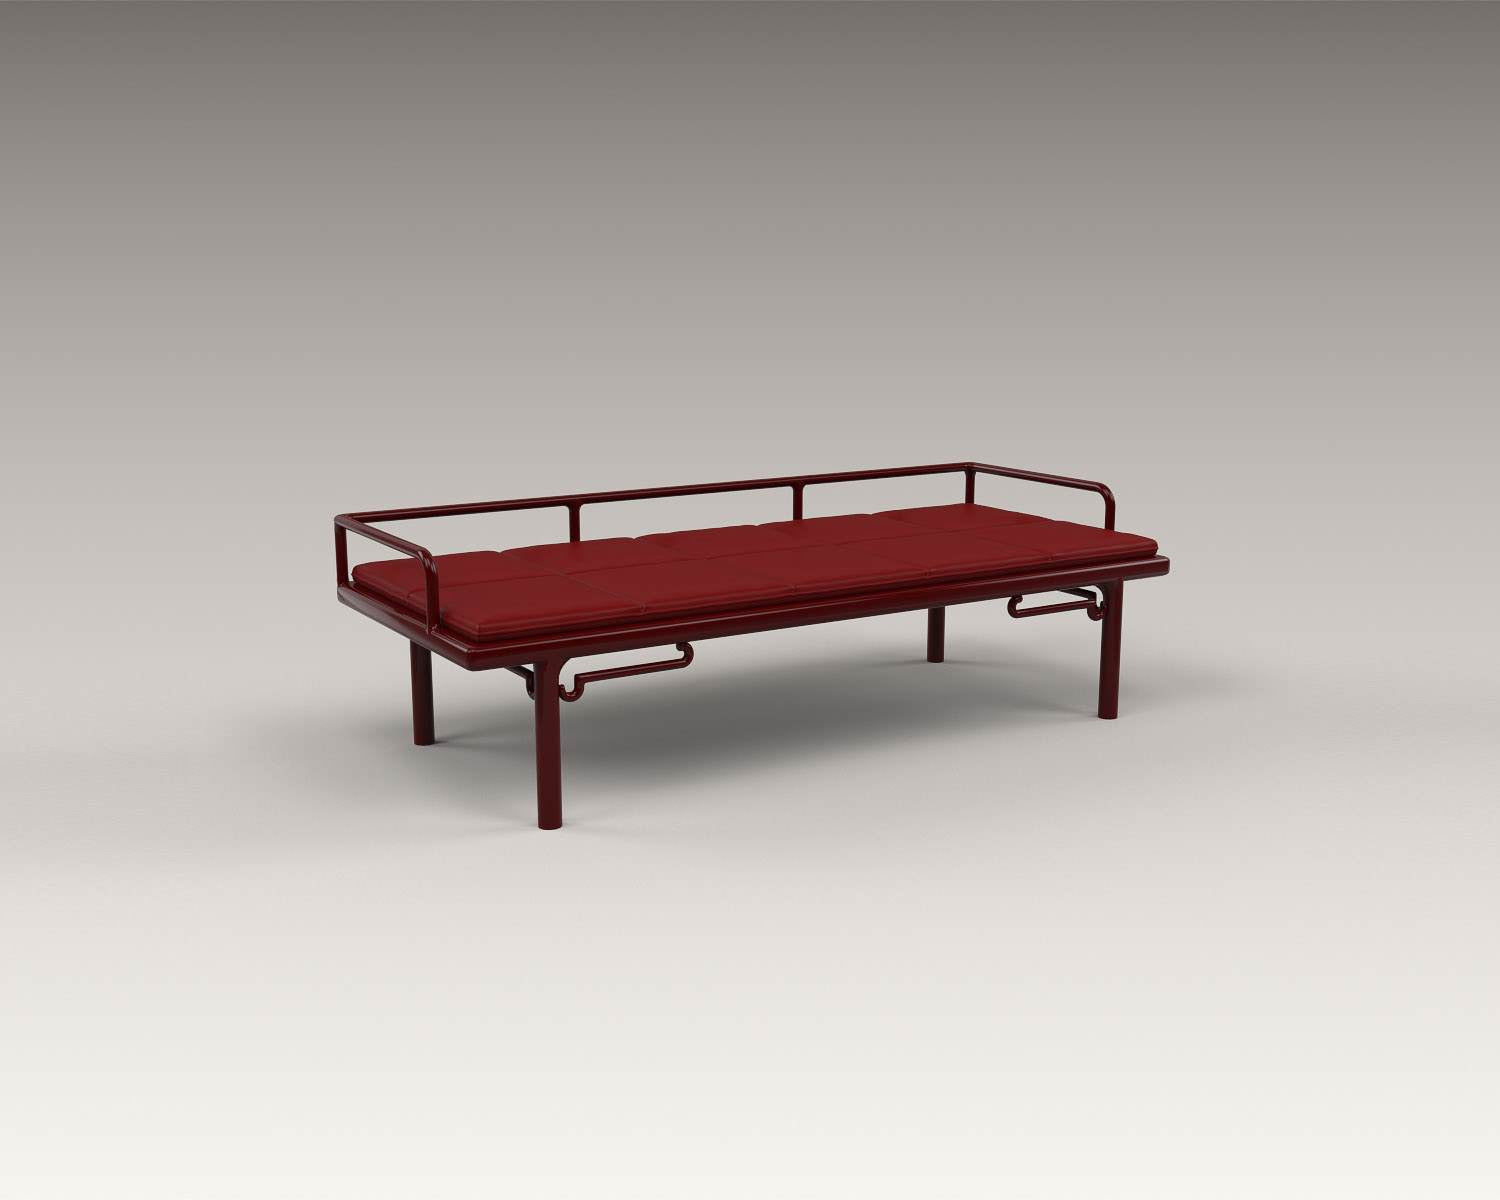 FURNITURE - DAYBEDS & BENCHES